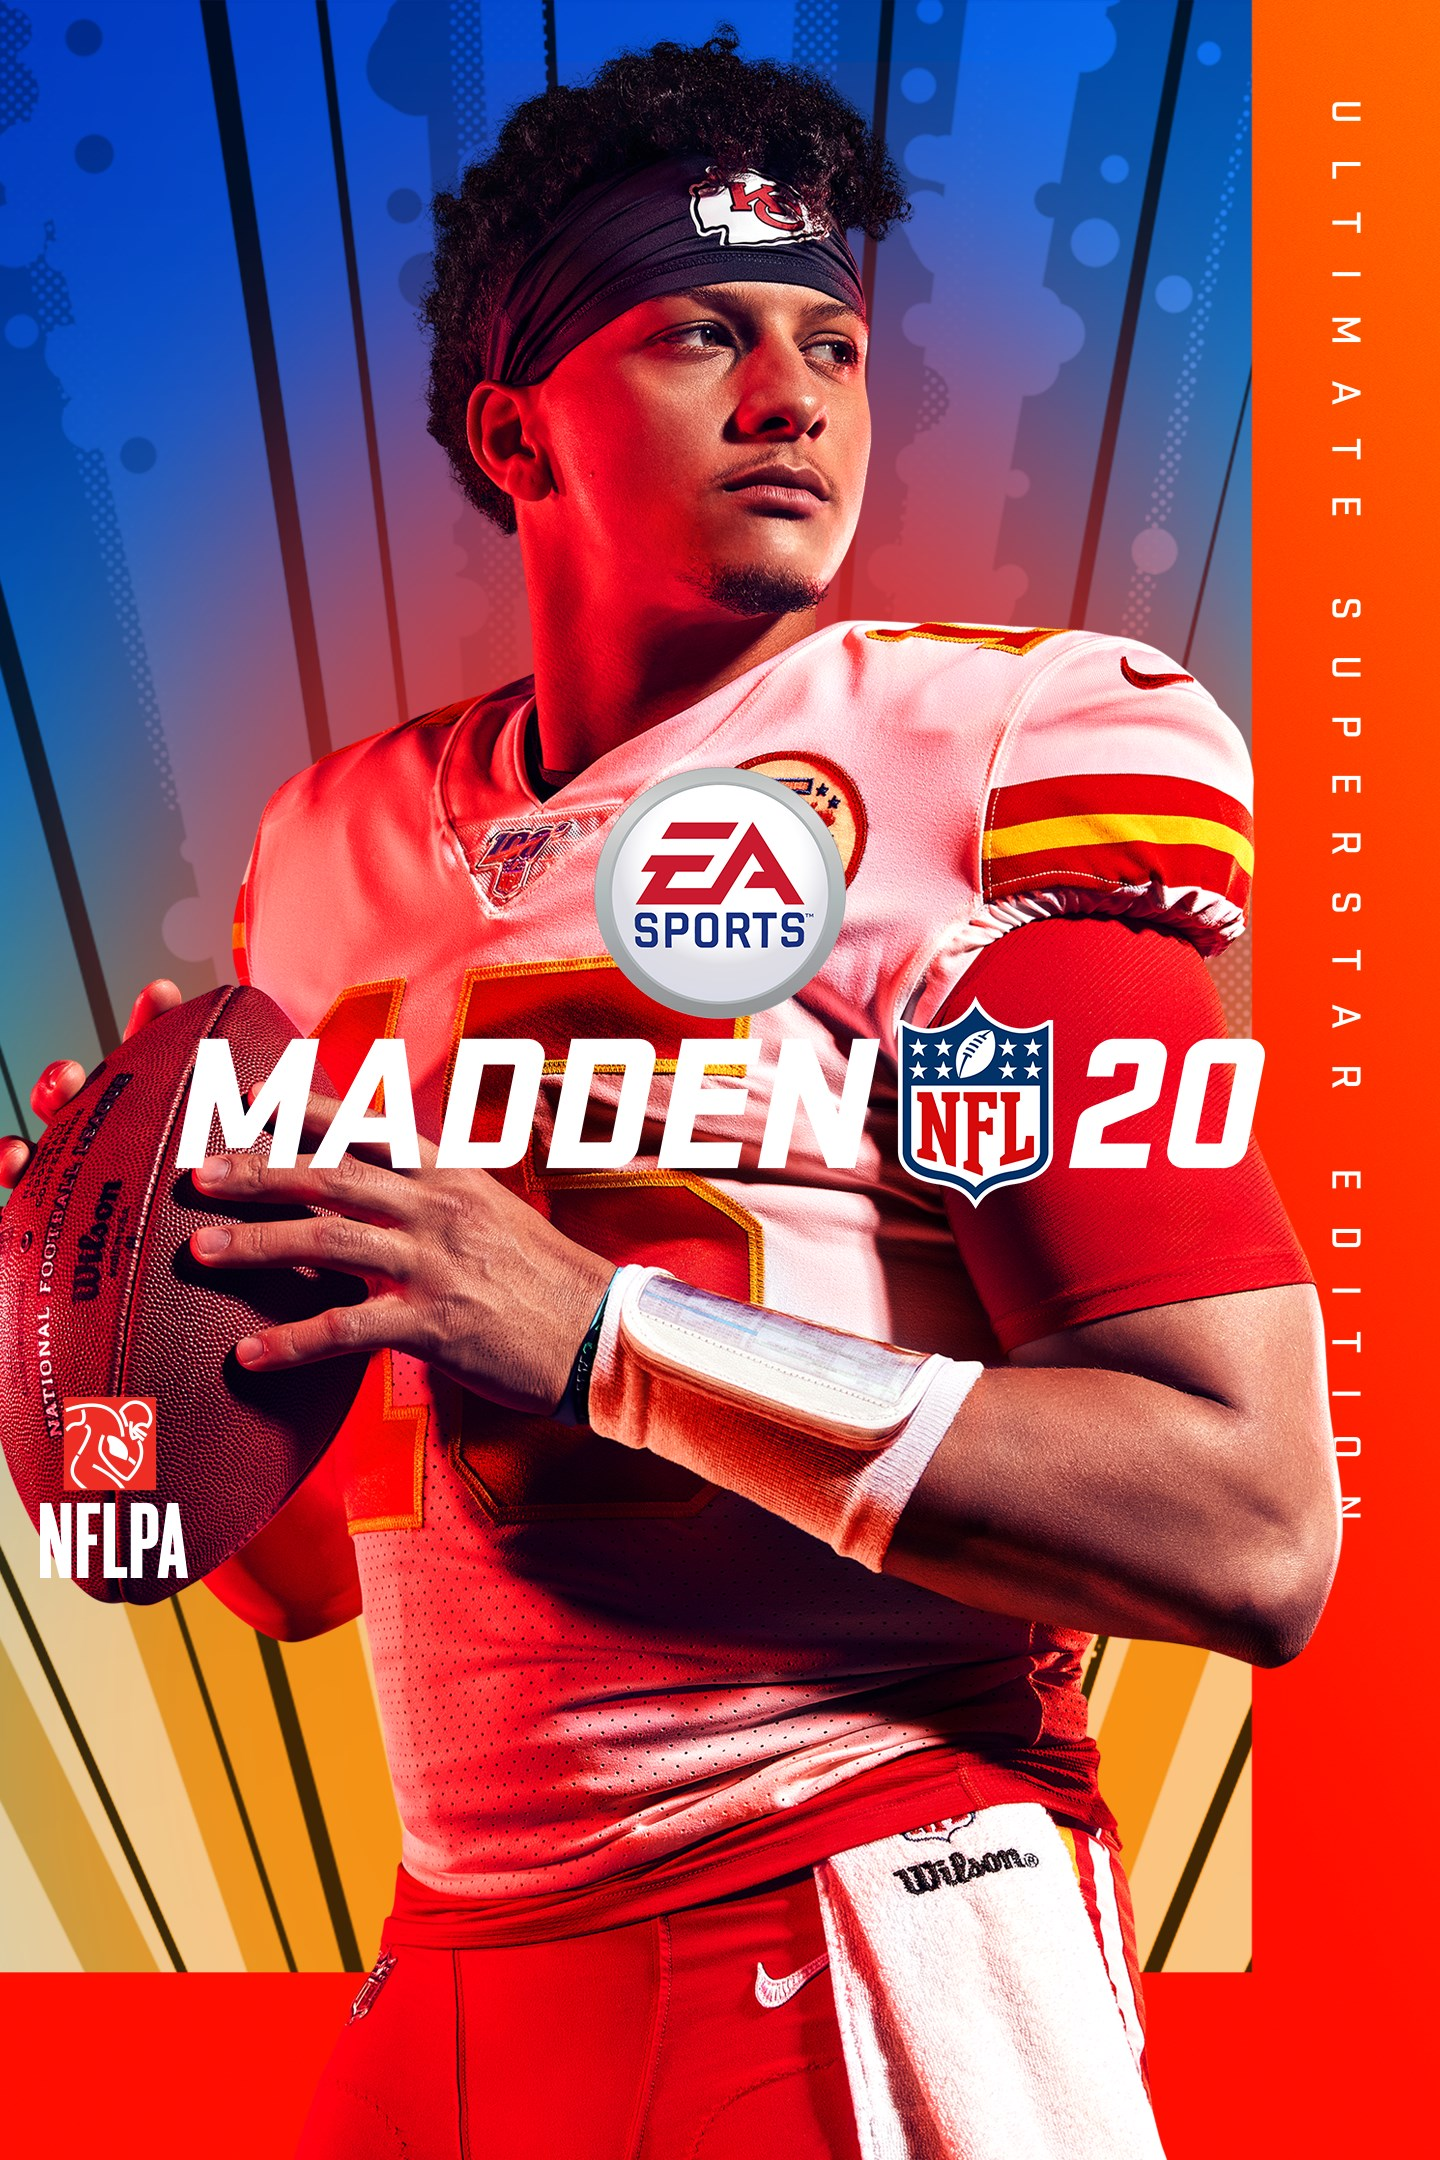 Madden NFL 20 for Xbox One | Xbox